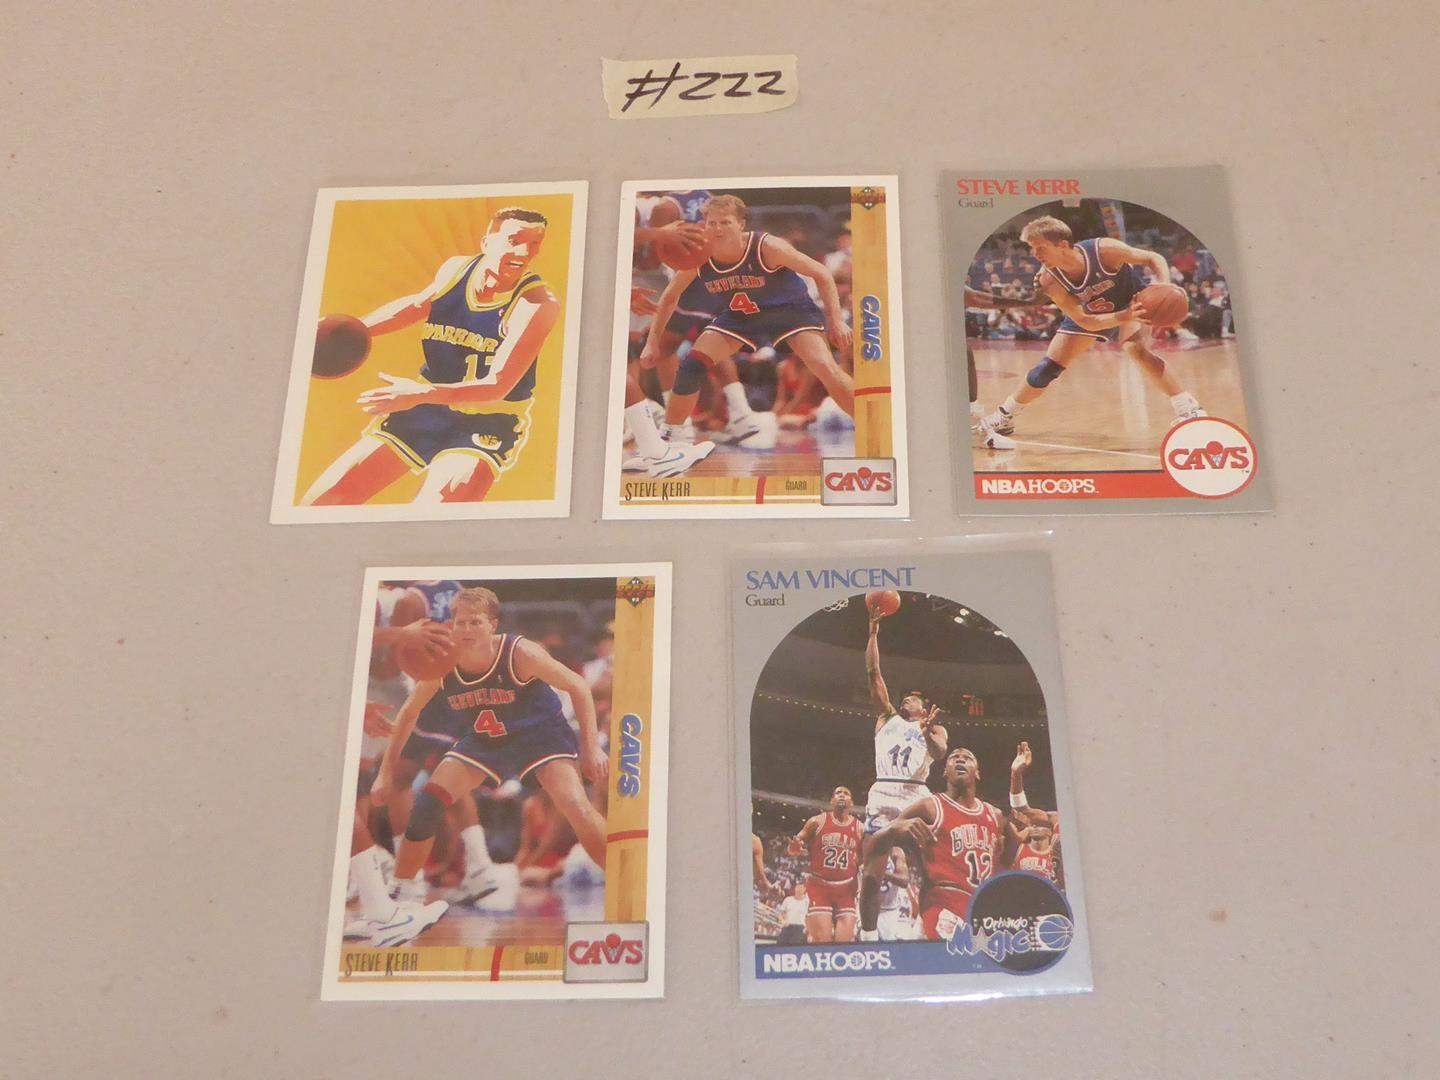 Lot # 222 - Steve Kerr, Sam Vincent & Chris Mullen Basketball Cards (main image)